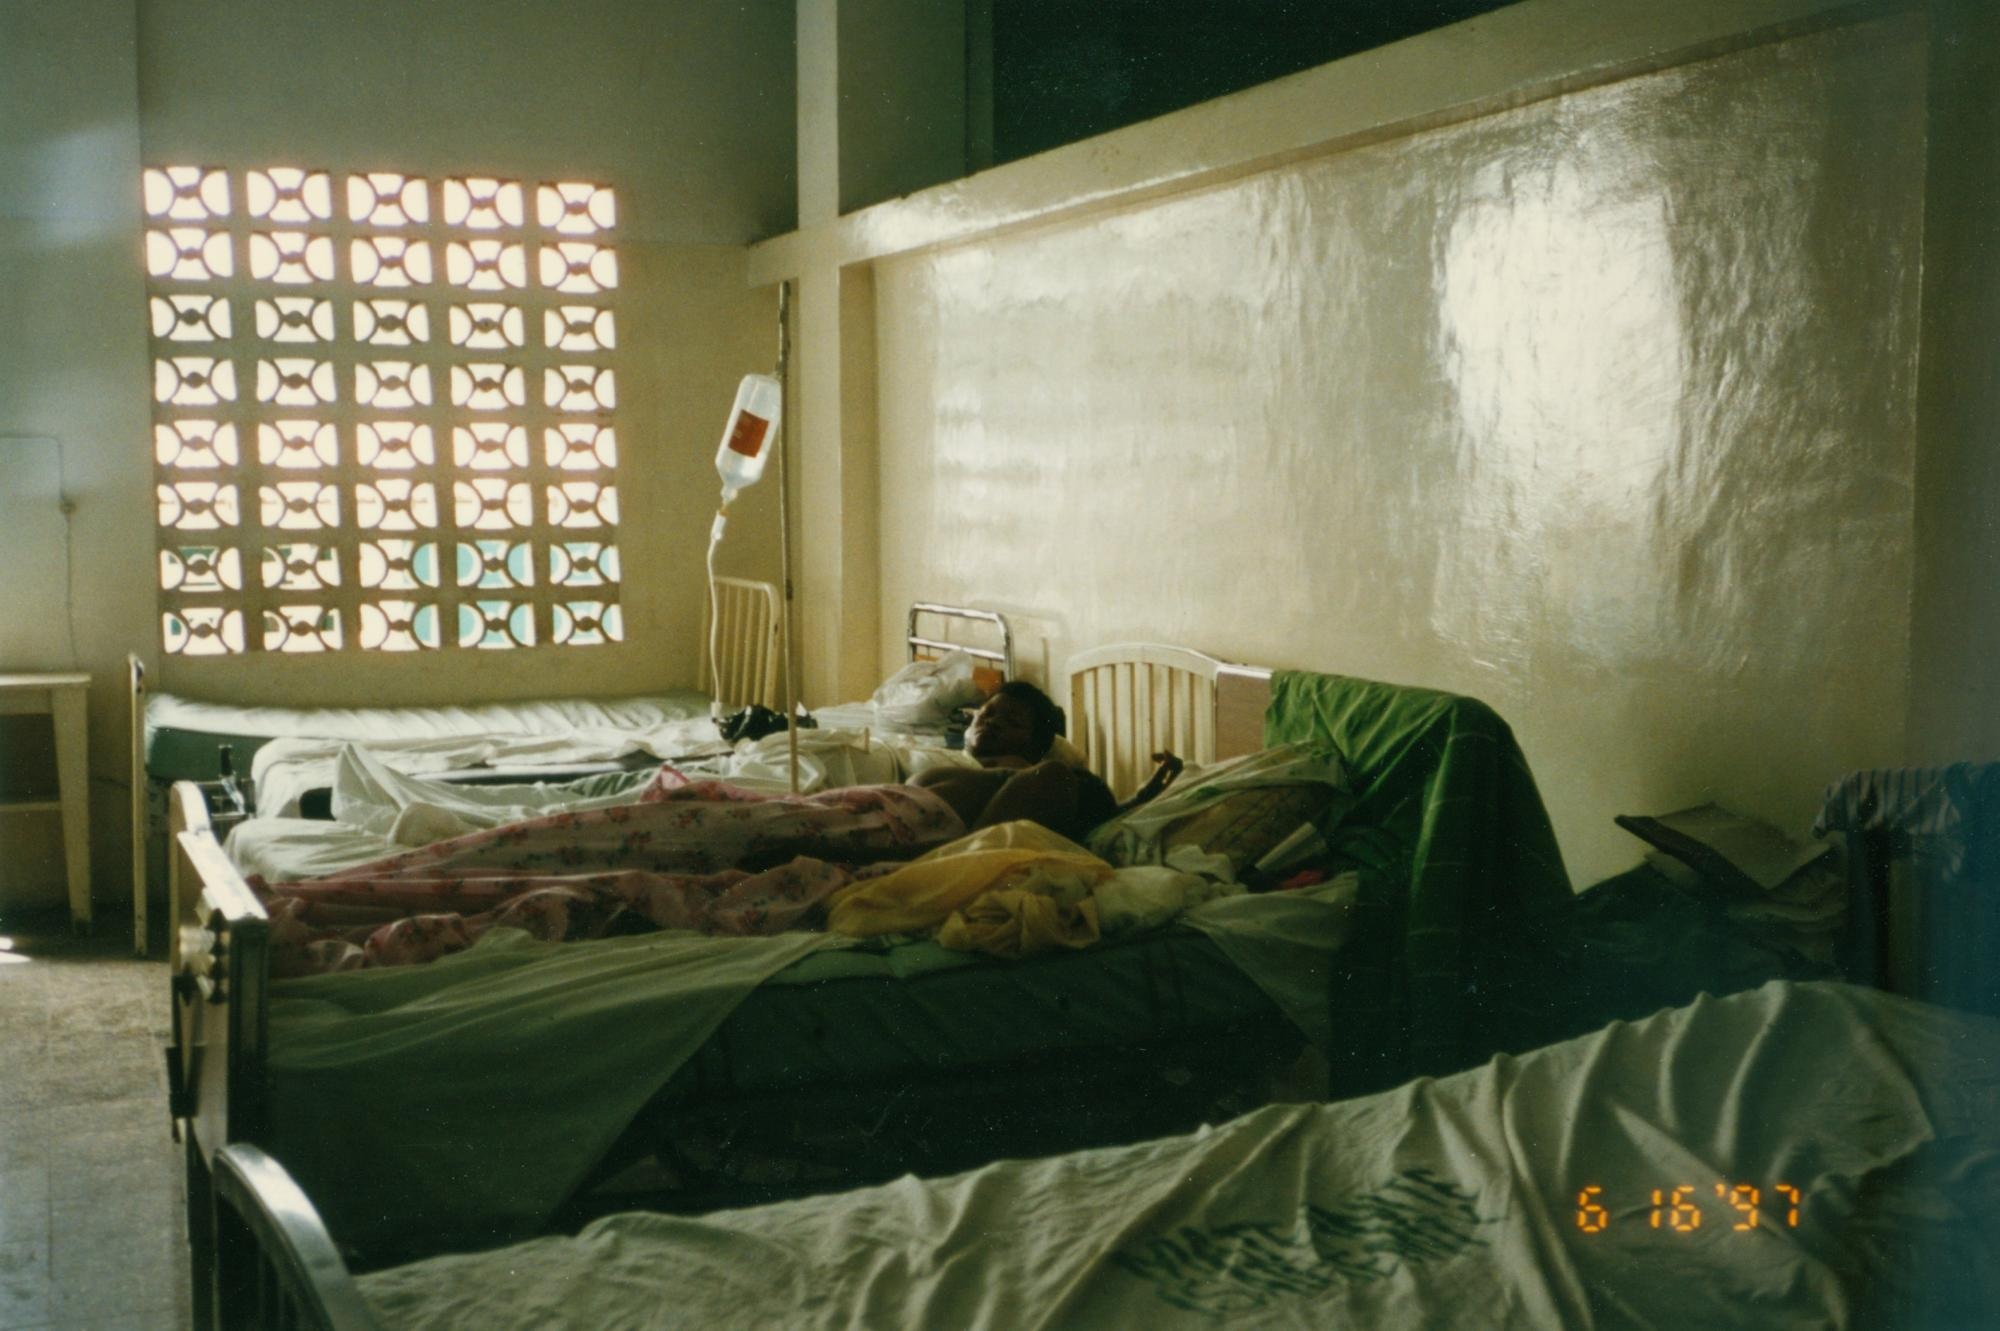 Maureen_1997_Patient_hosp_room__image31.jpg